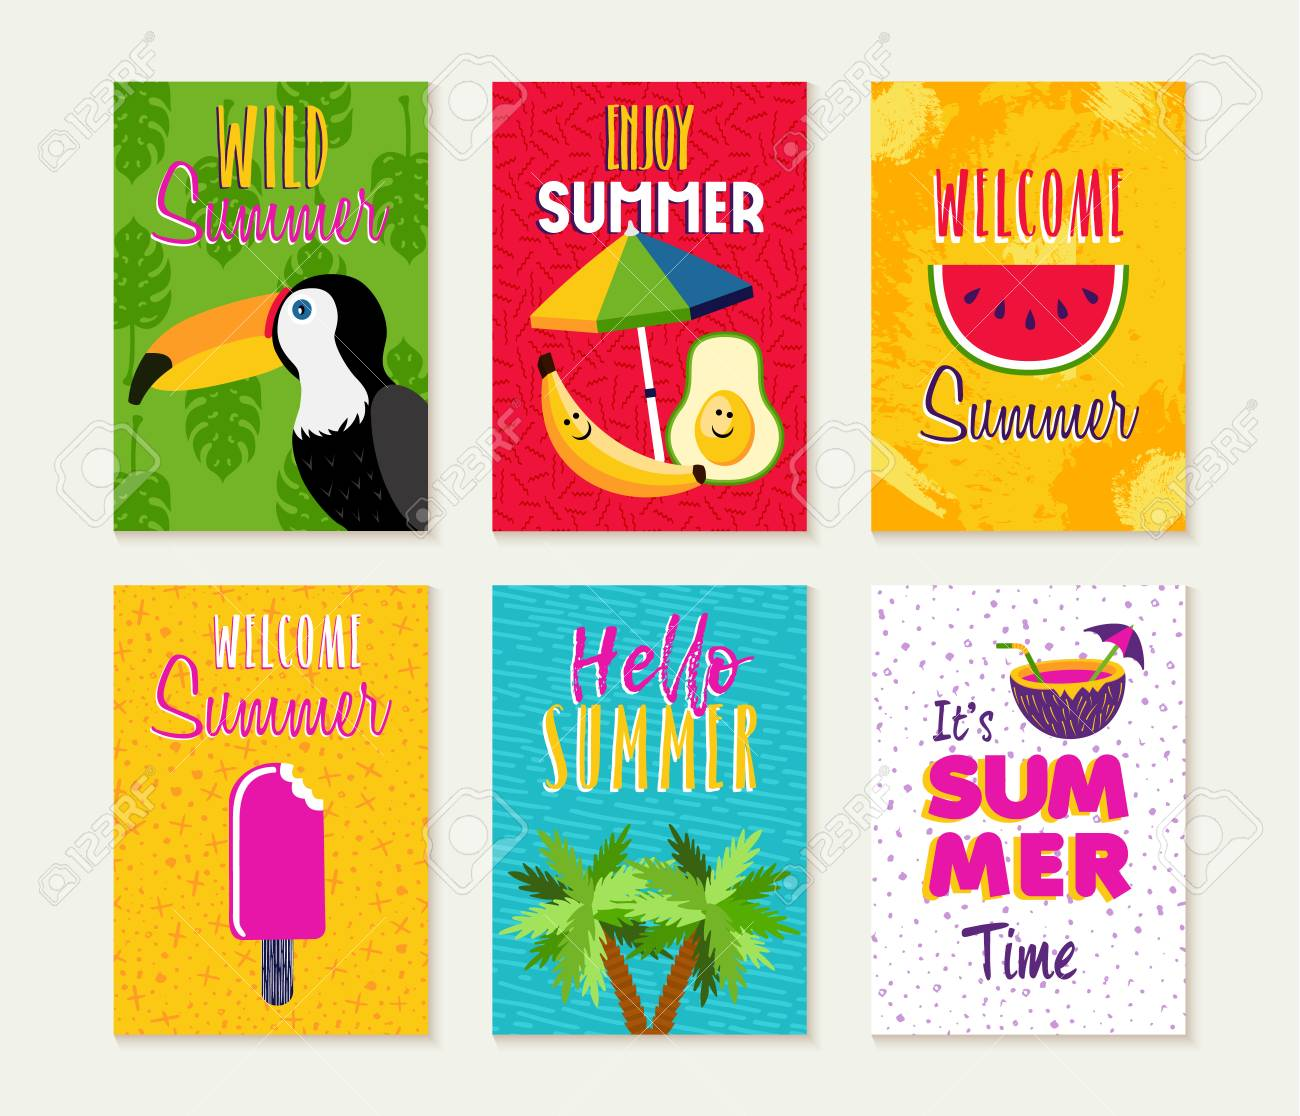 Summer template set, summertime vacation quotes with fun season